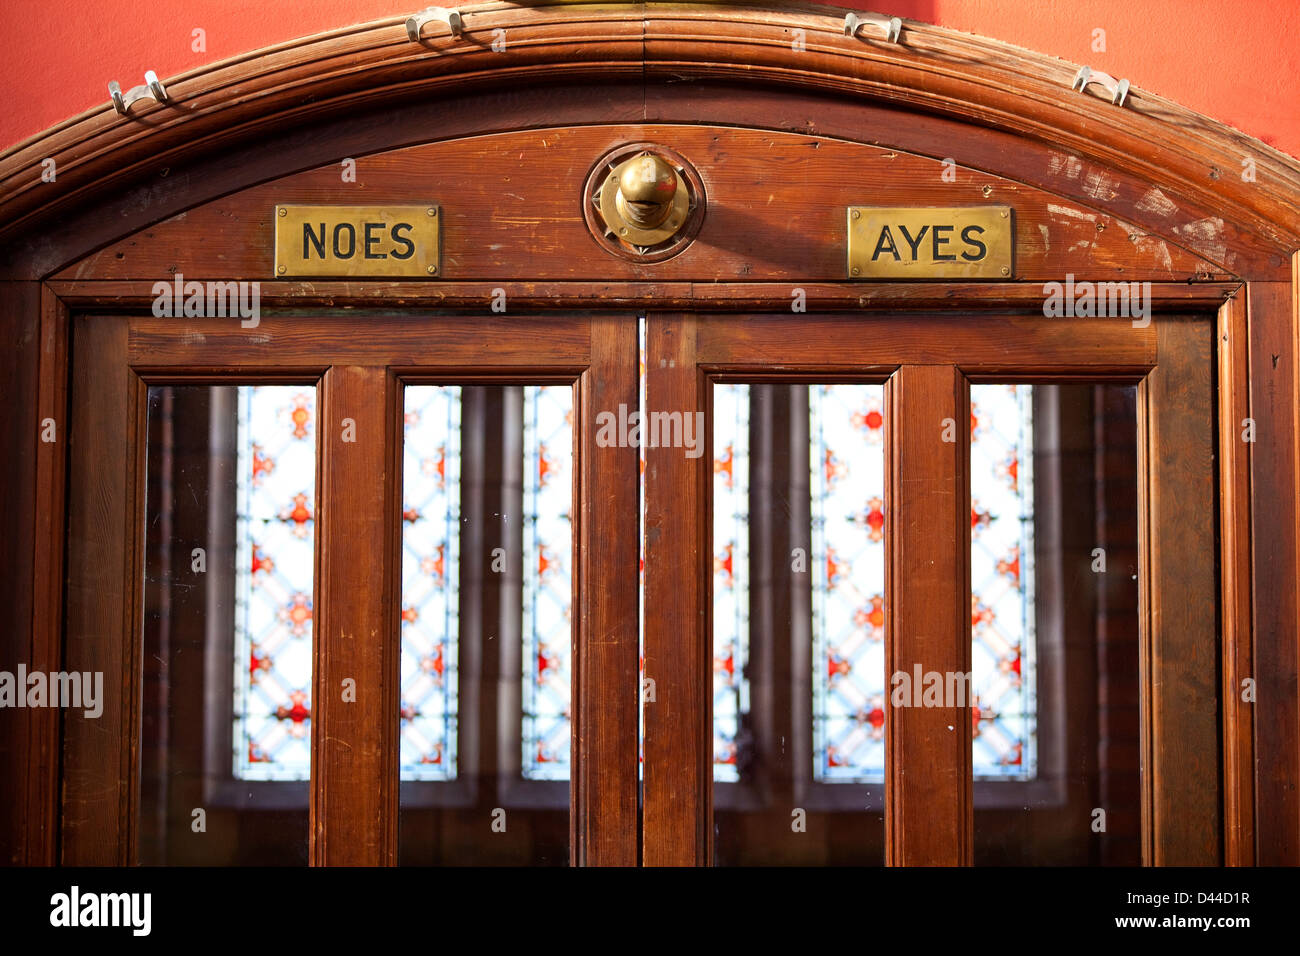 Doors marking \u0027Ayes\u0027 and \u0027Noes\u0027 where the audience vote at The Oxford Union Society formal Debating Chamber Frewin Court Oxford & Doors marking \u0027Ayes\u0027 and \u0027Noes\u0027 where the audience vote at The ... Pezcame.Com